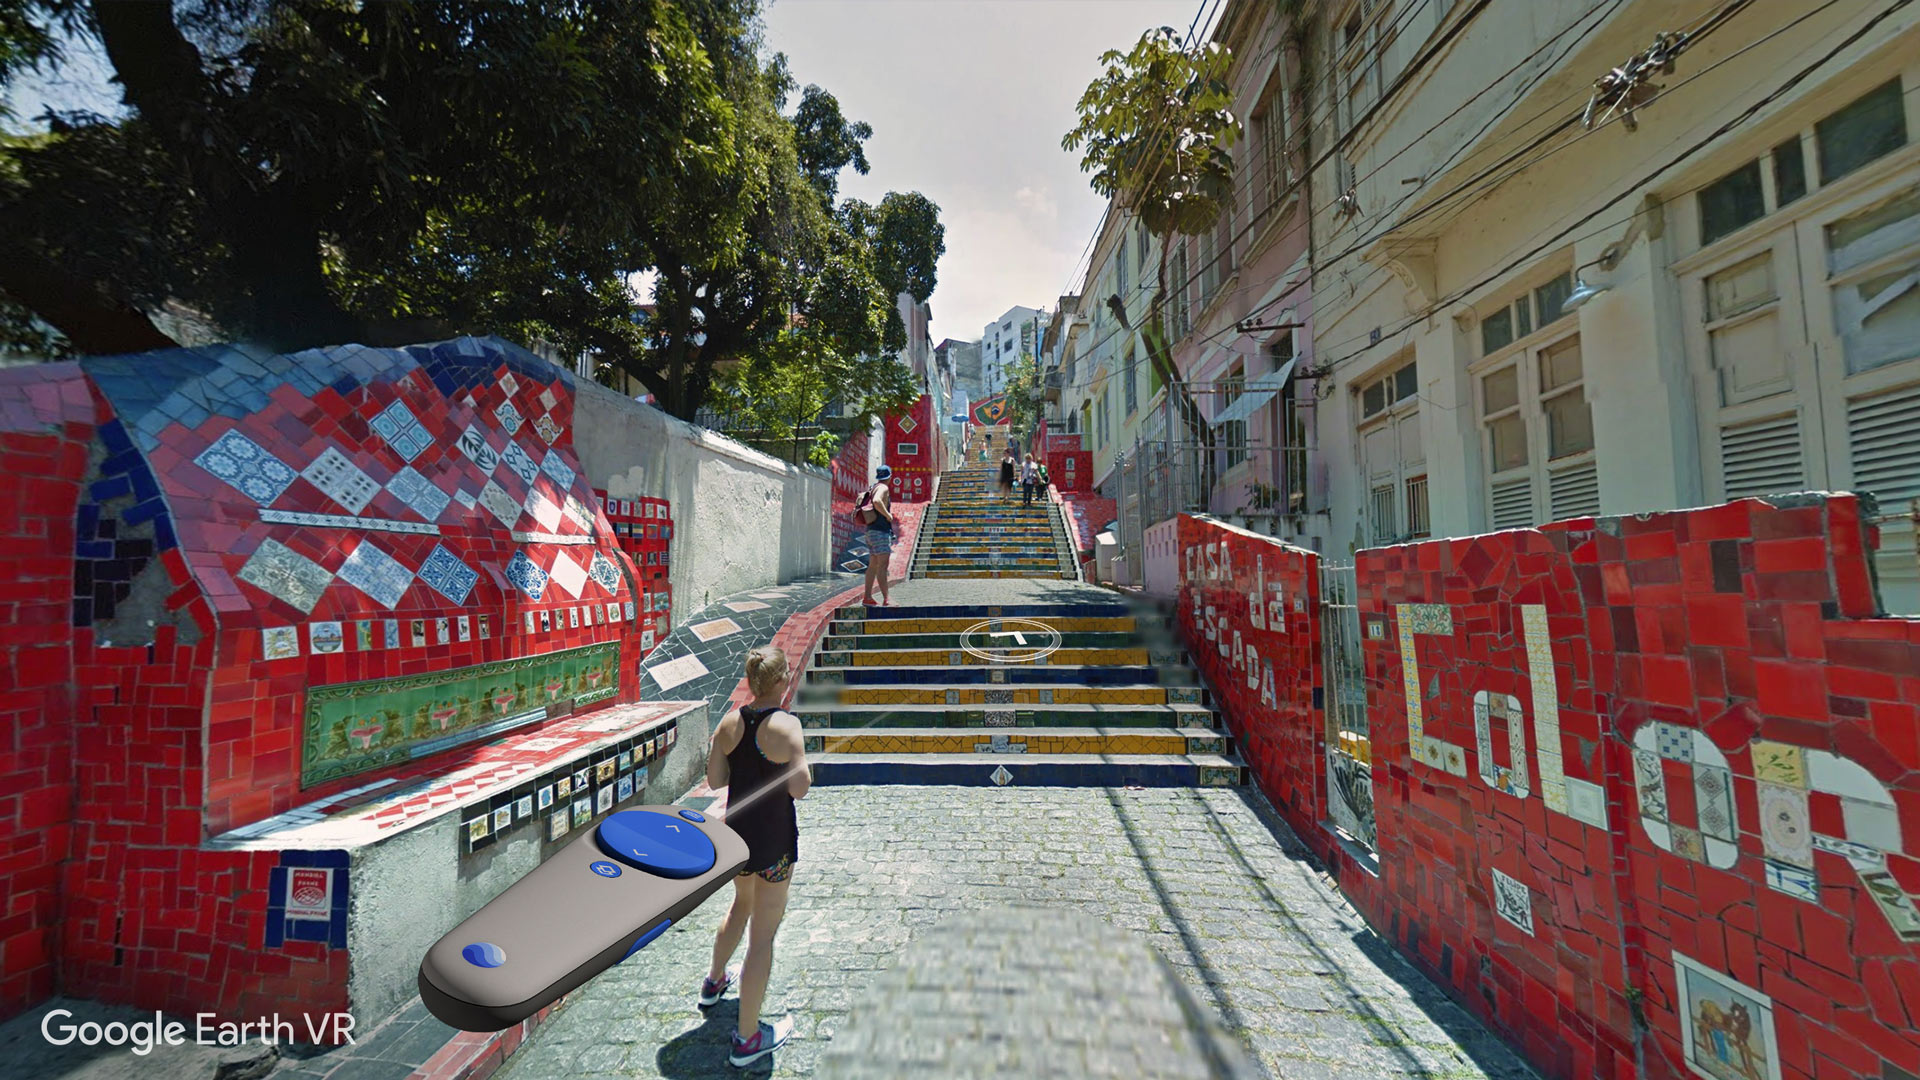 Google Earth VR' Update Adds Street View Navigation, Optimizes for